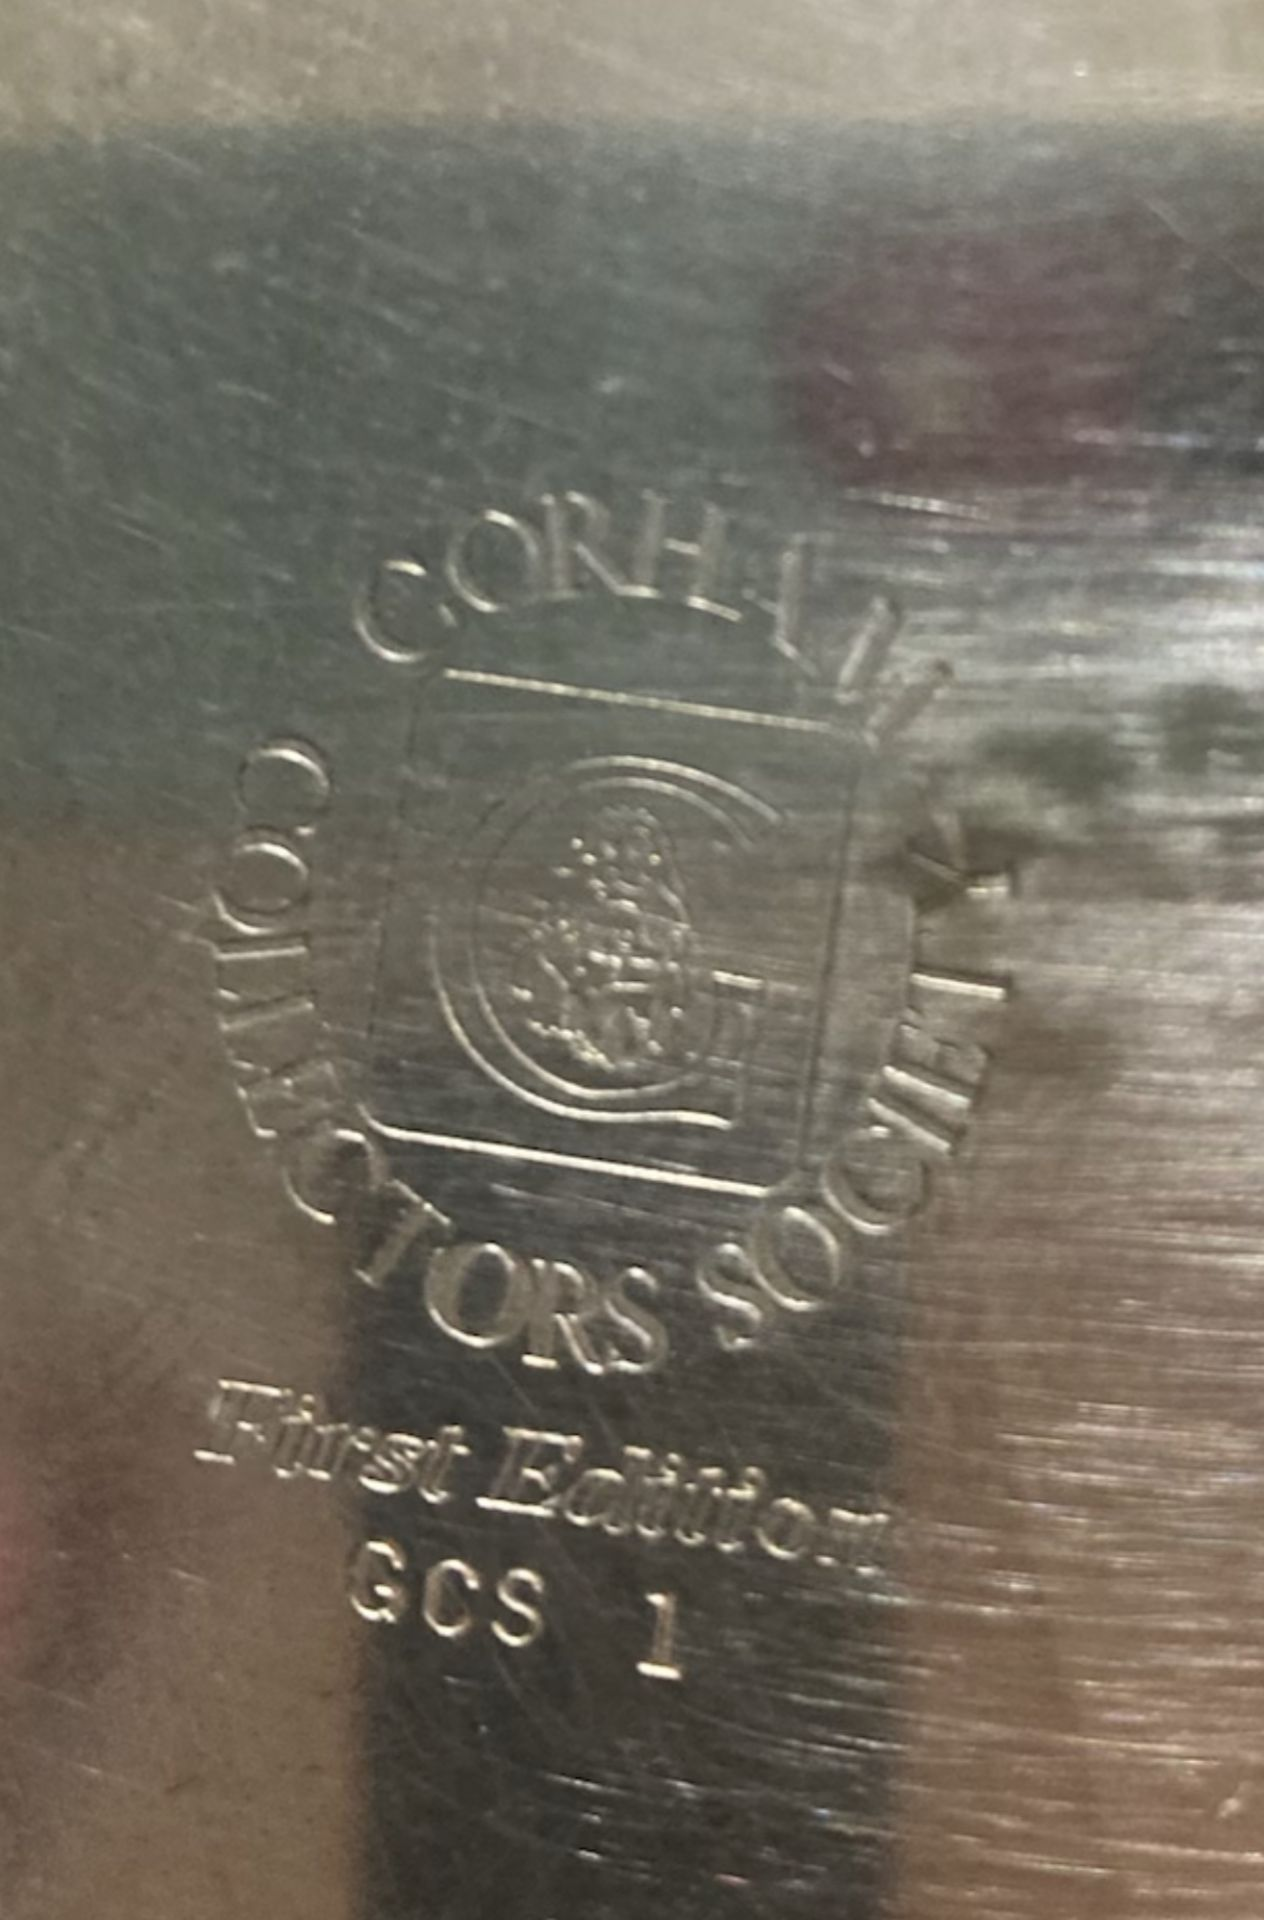 Norman Rockwell Plate in Silver (possibly plated) - Corham Collectors Society, First Edition, GCS 1 - Image 3 of 3